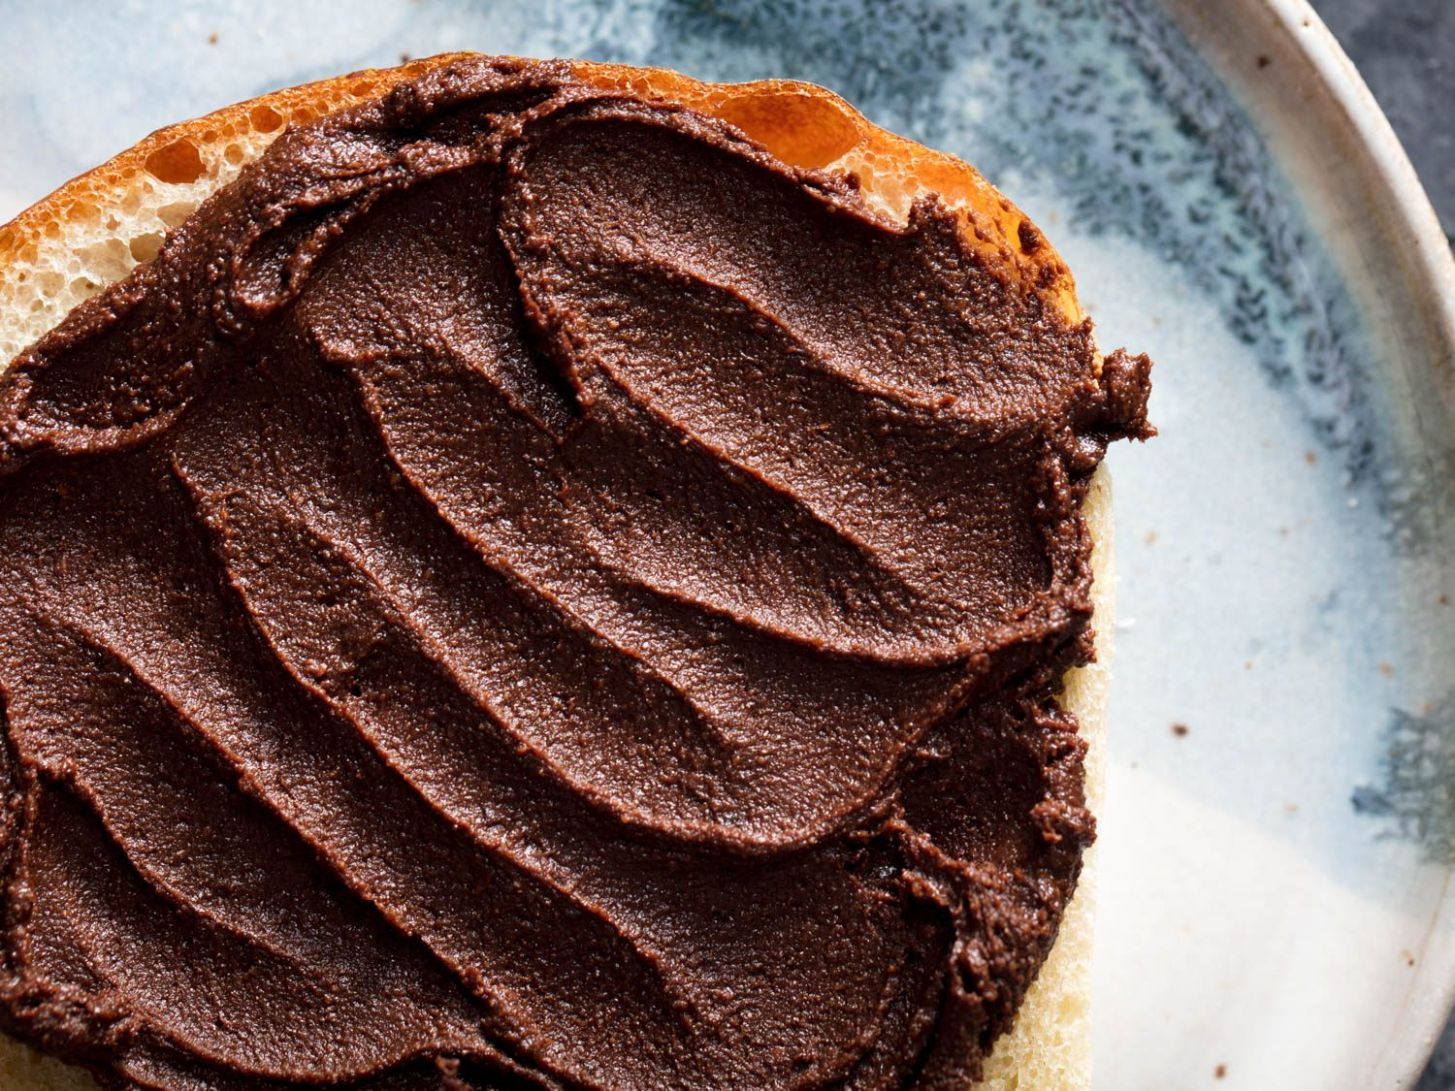 Crispy Homemade Nutella (Chocolate-Hazelnut Spread) Recipe - Recipe Chocolate Hazelnut Spread